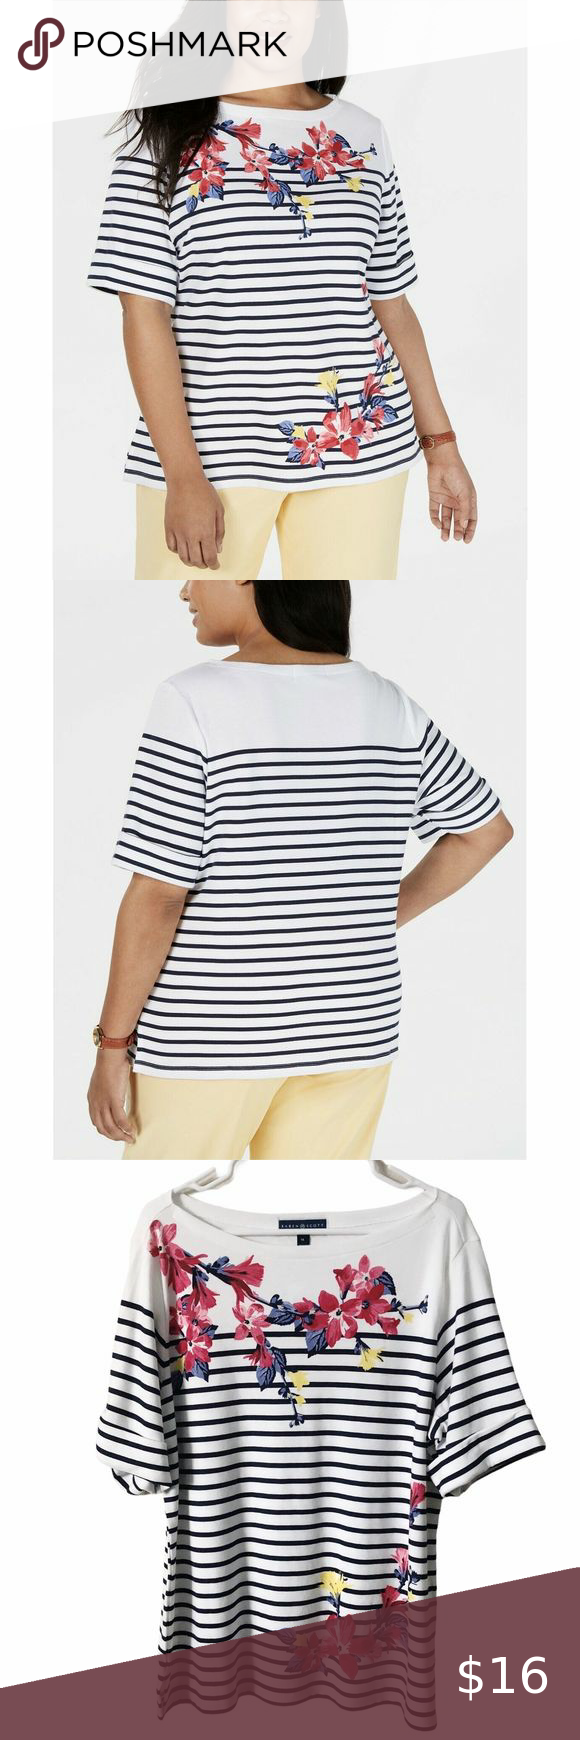 Karen Scott Womens Plus Striped Cuffed Pullover Top